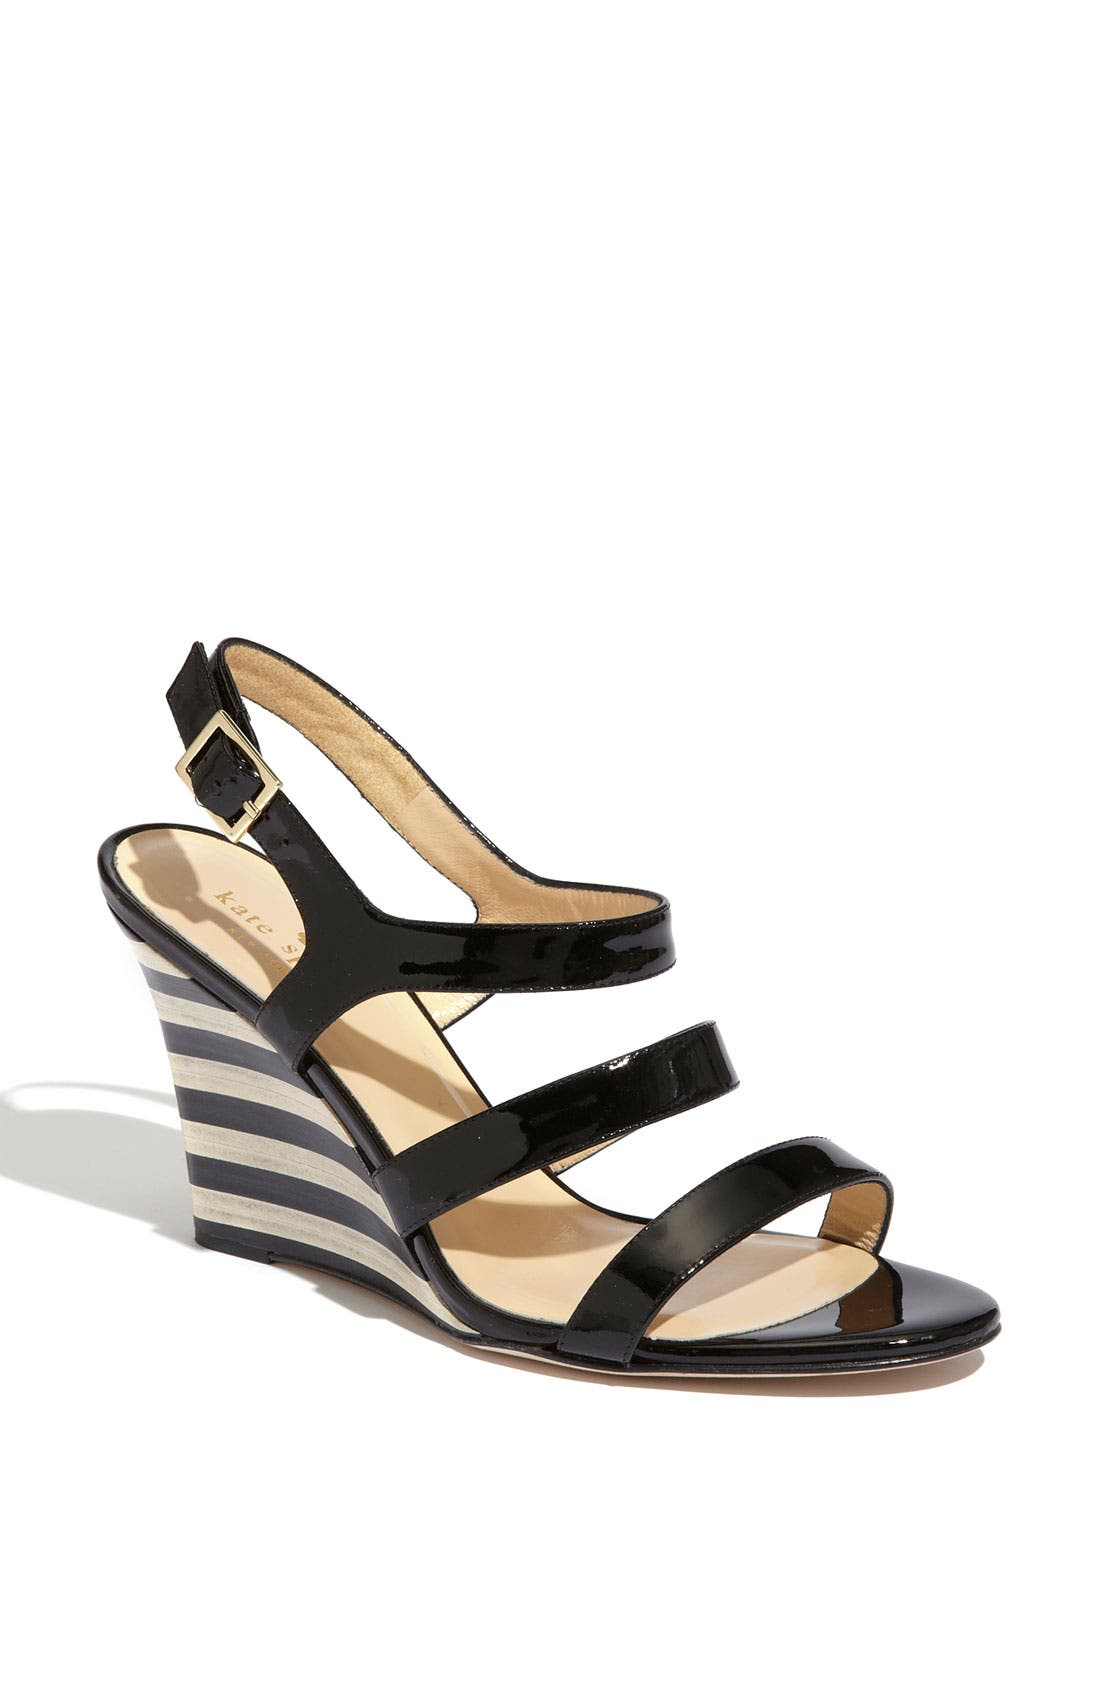 Main Image - kate spade new york 'cindy' wedge